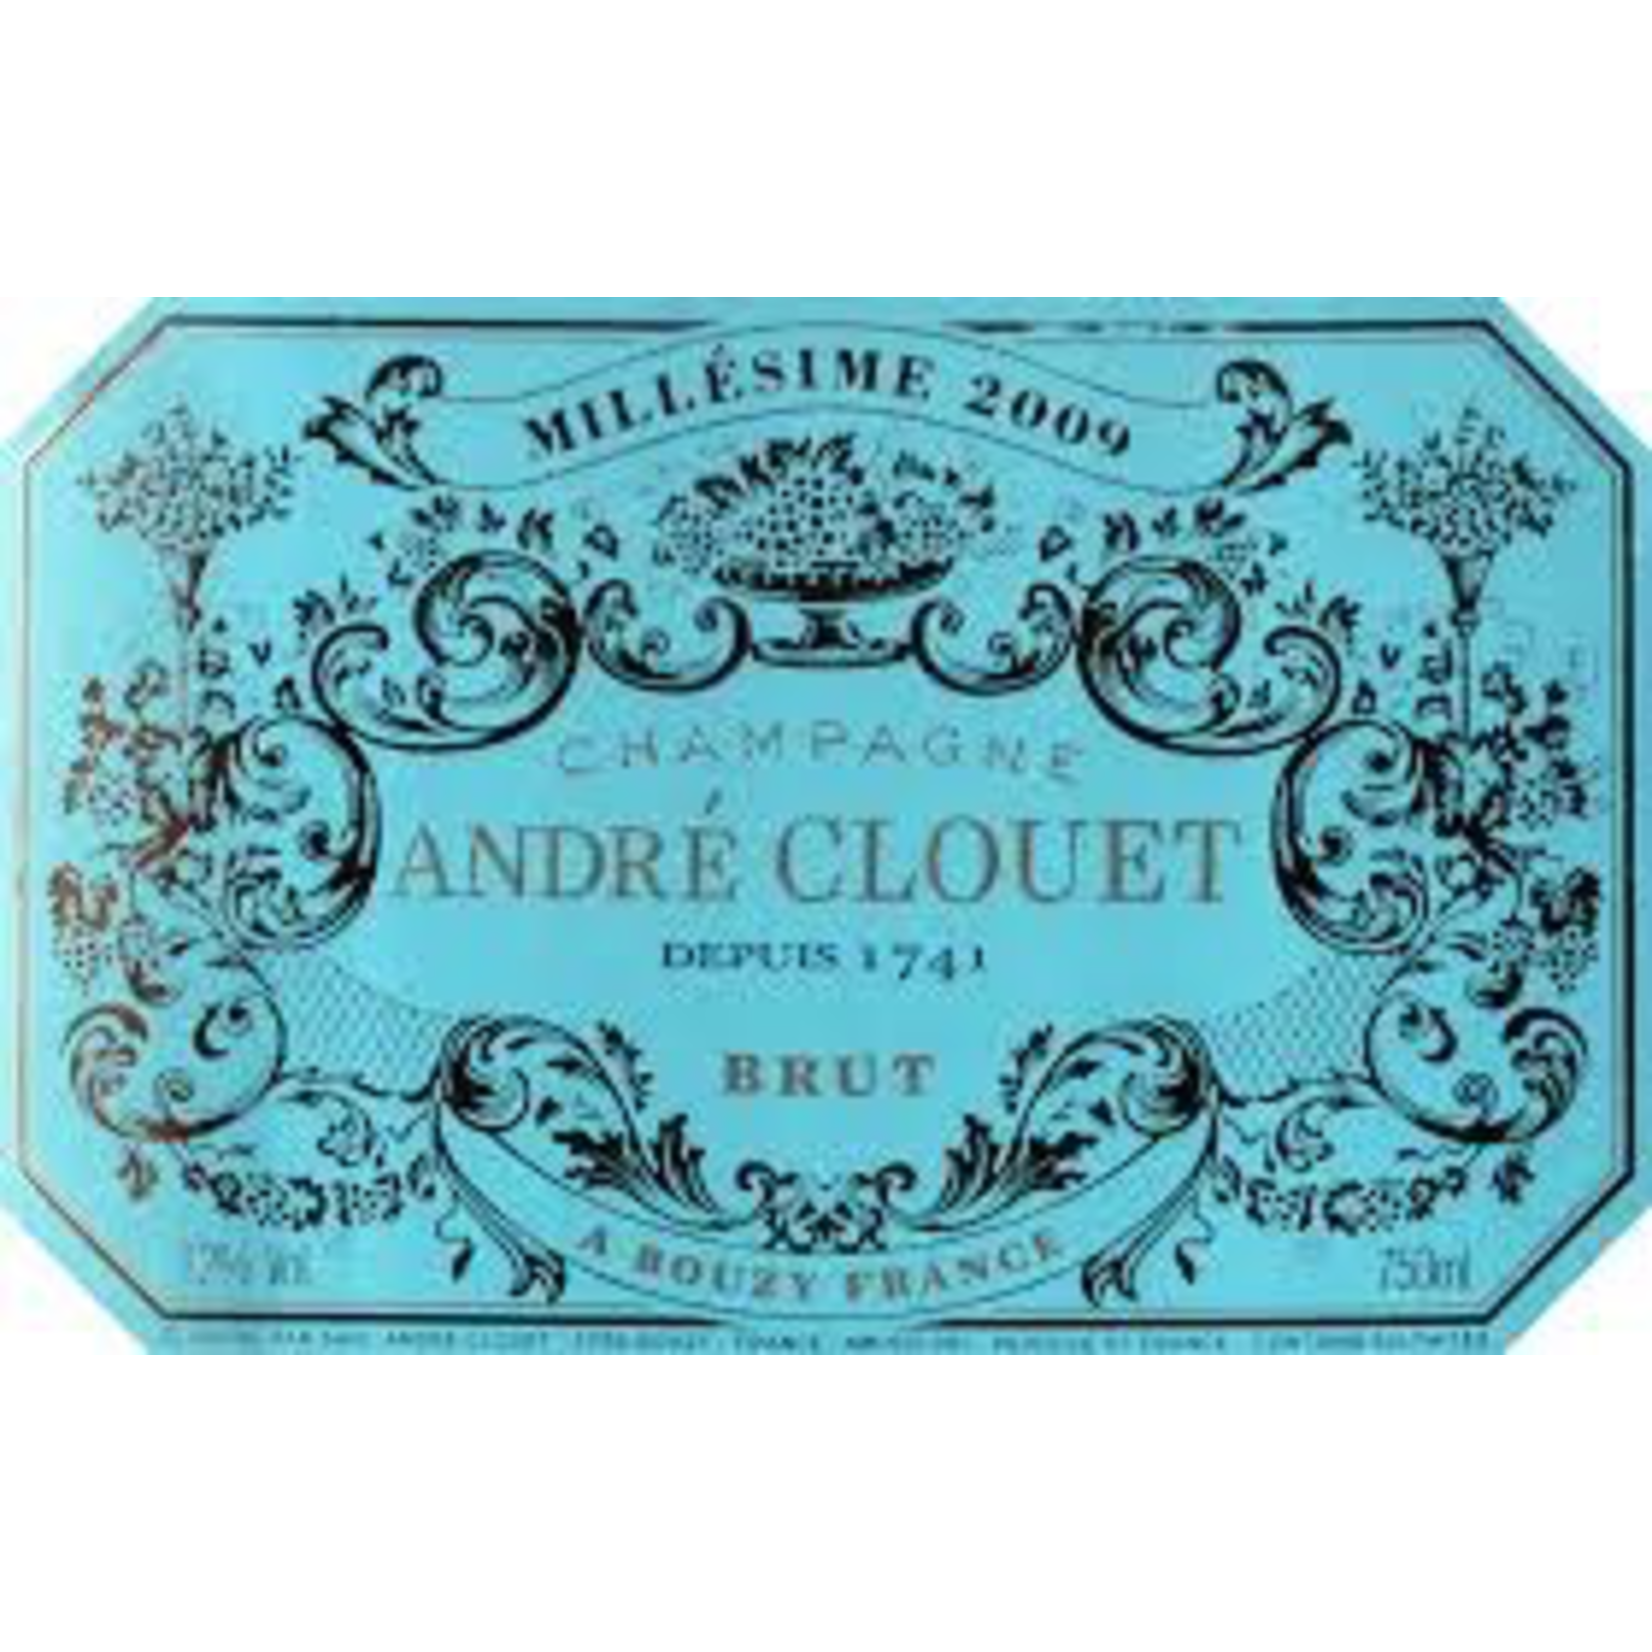 Sparkling Andre Clouet Champagne Millesime 2009